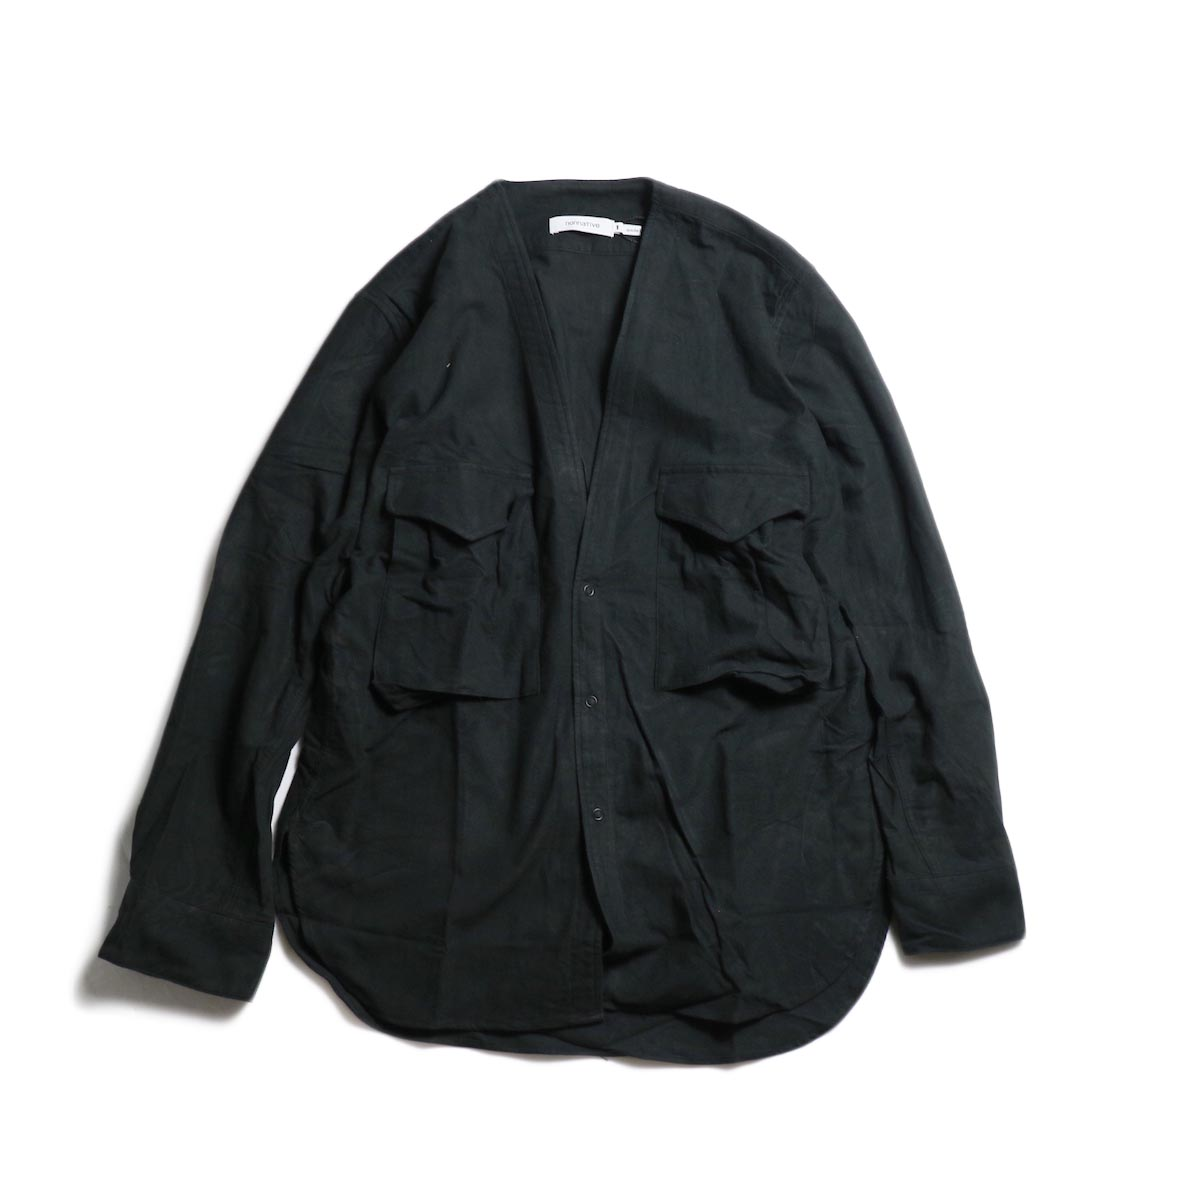 nonnative / CARPENTER SHIRT JACKET COTTON FLANNEL -Black